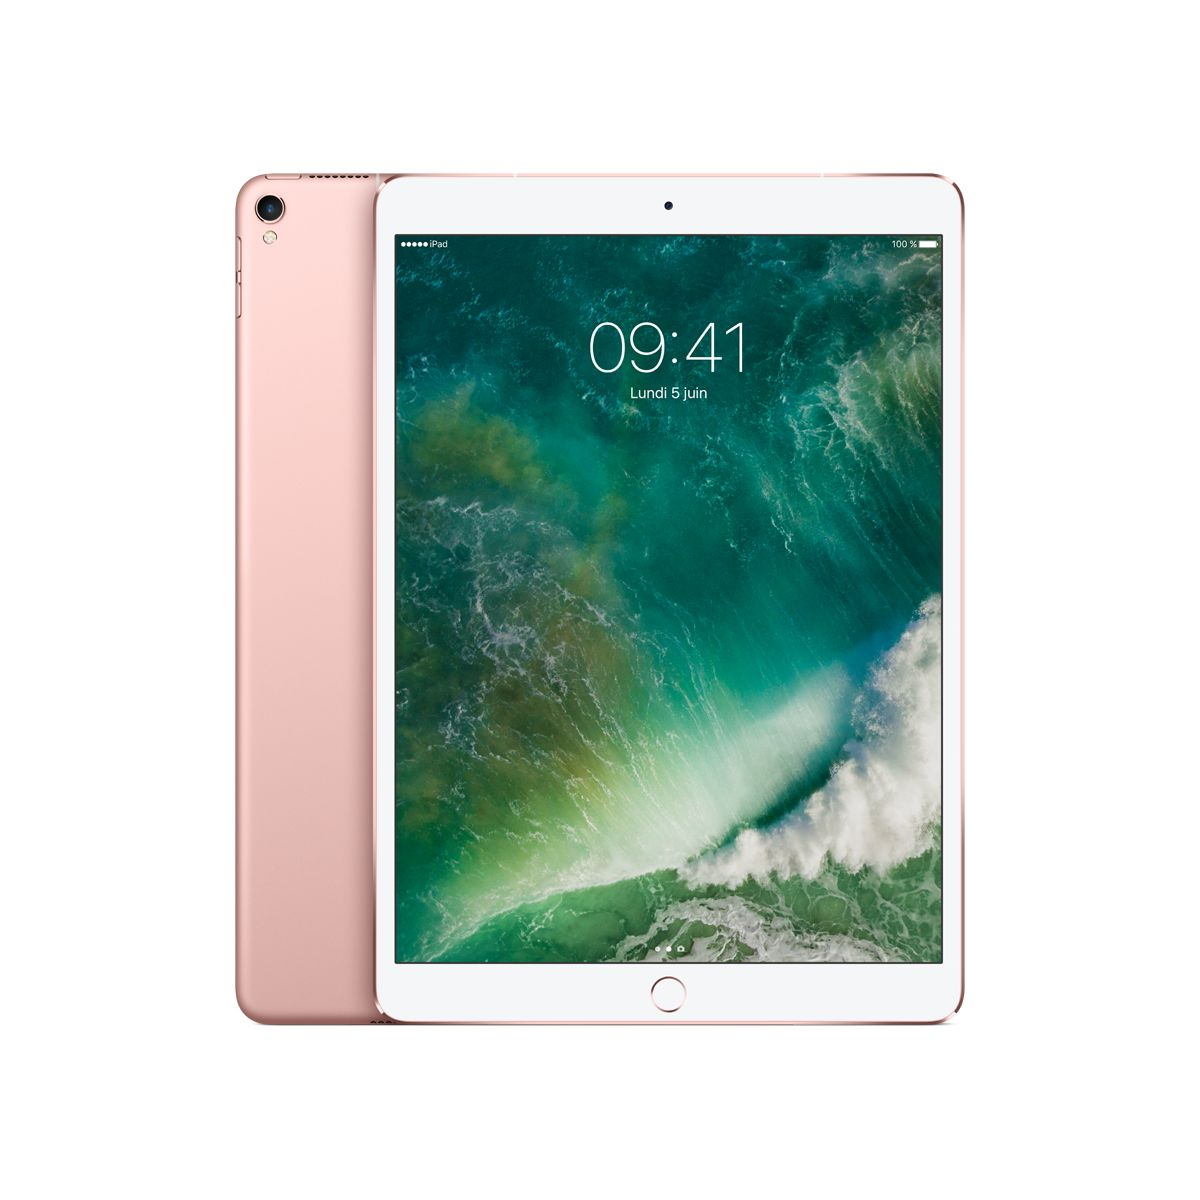 Tablette IPAD Pro 10.5 256Go Cel Or Rose (photo)